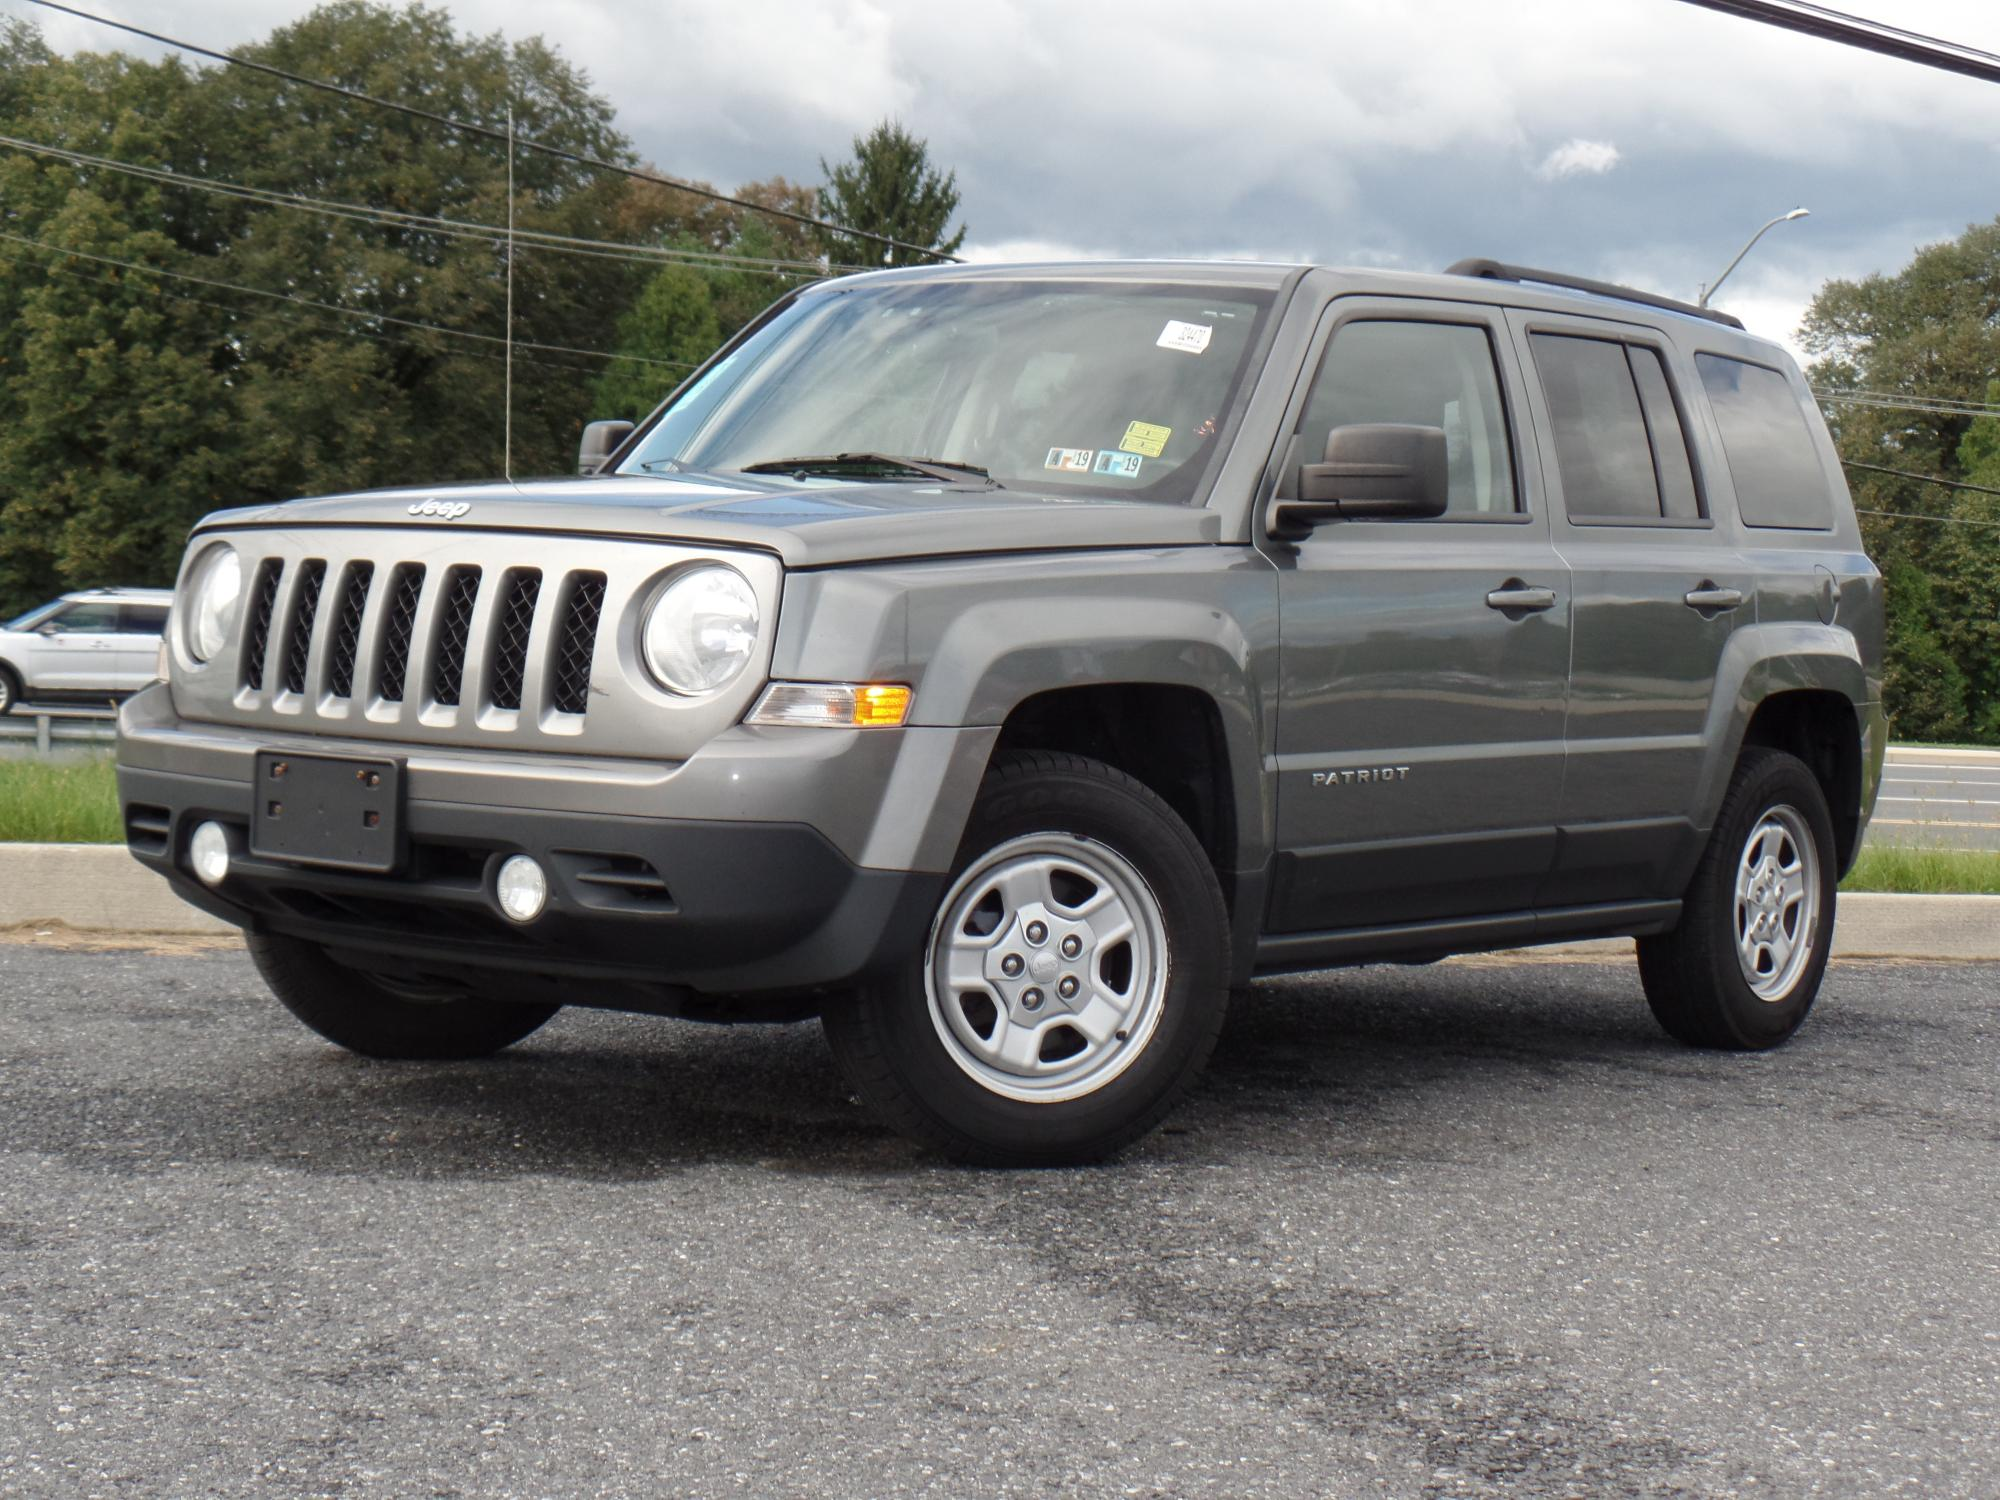 9-18-2018_2013_Jeep_Patriot_203382__1_.JPG